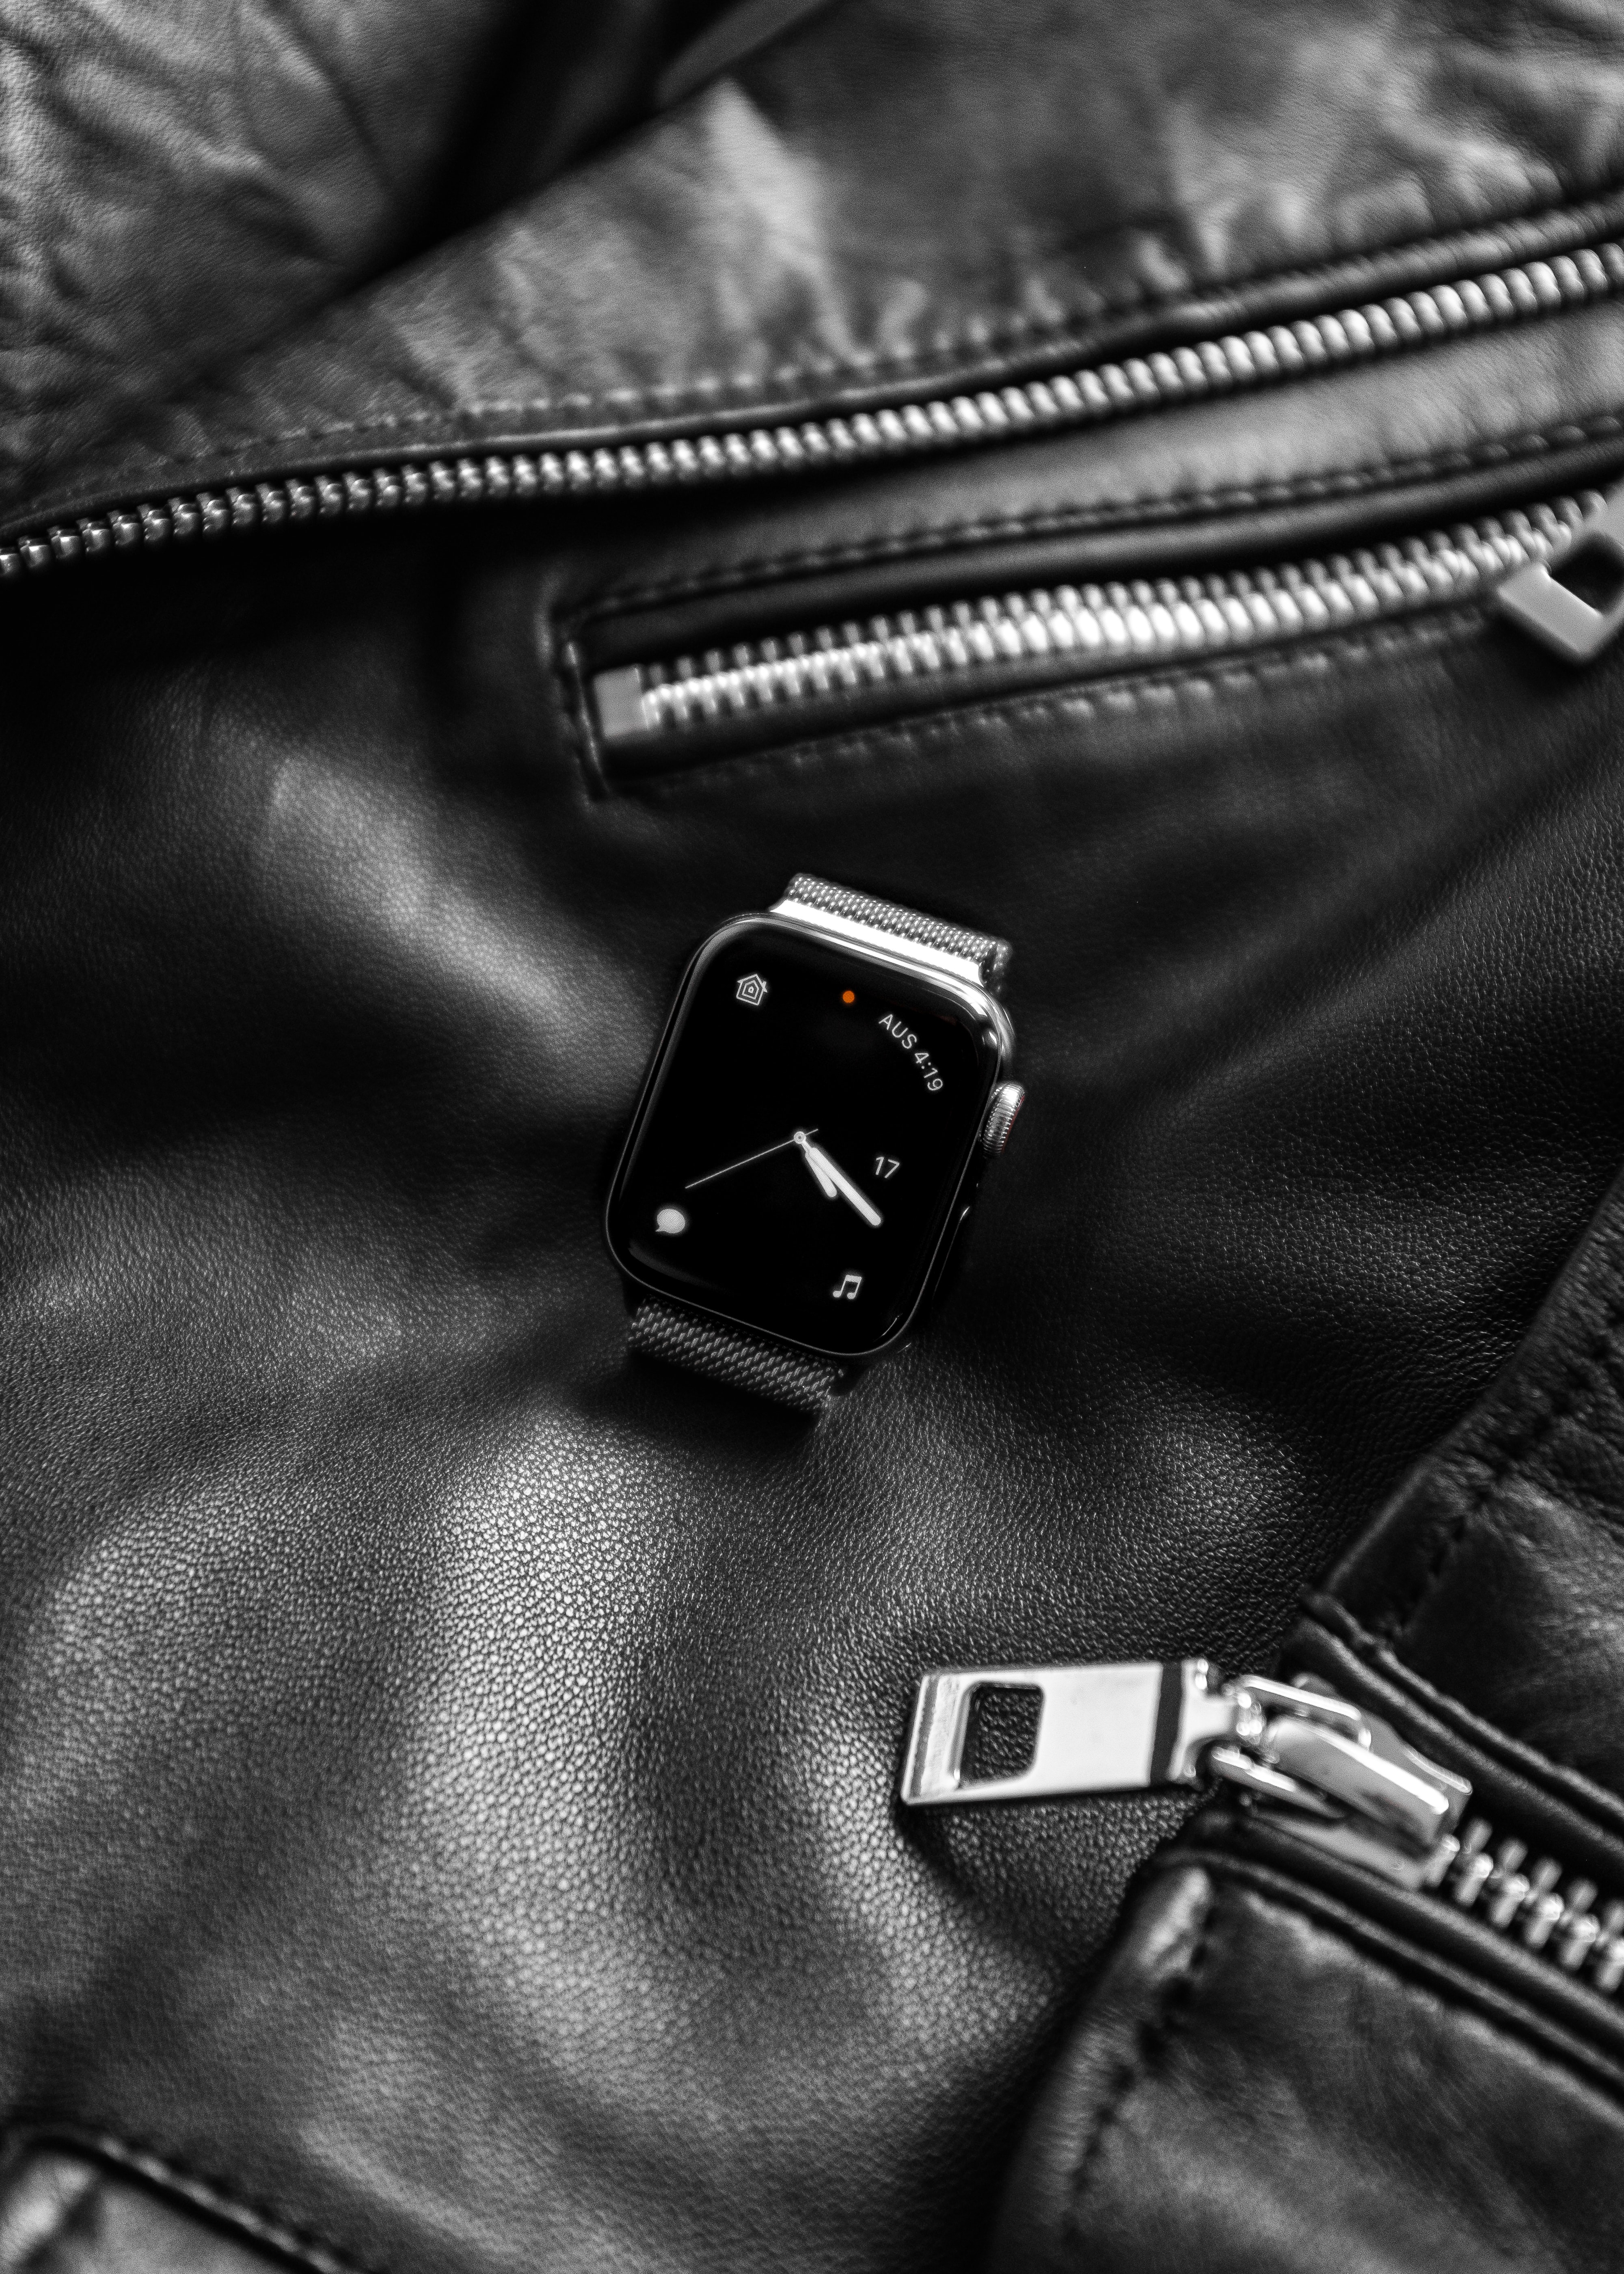 black smartwatch on top of black leather jacket